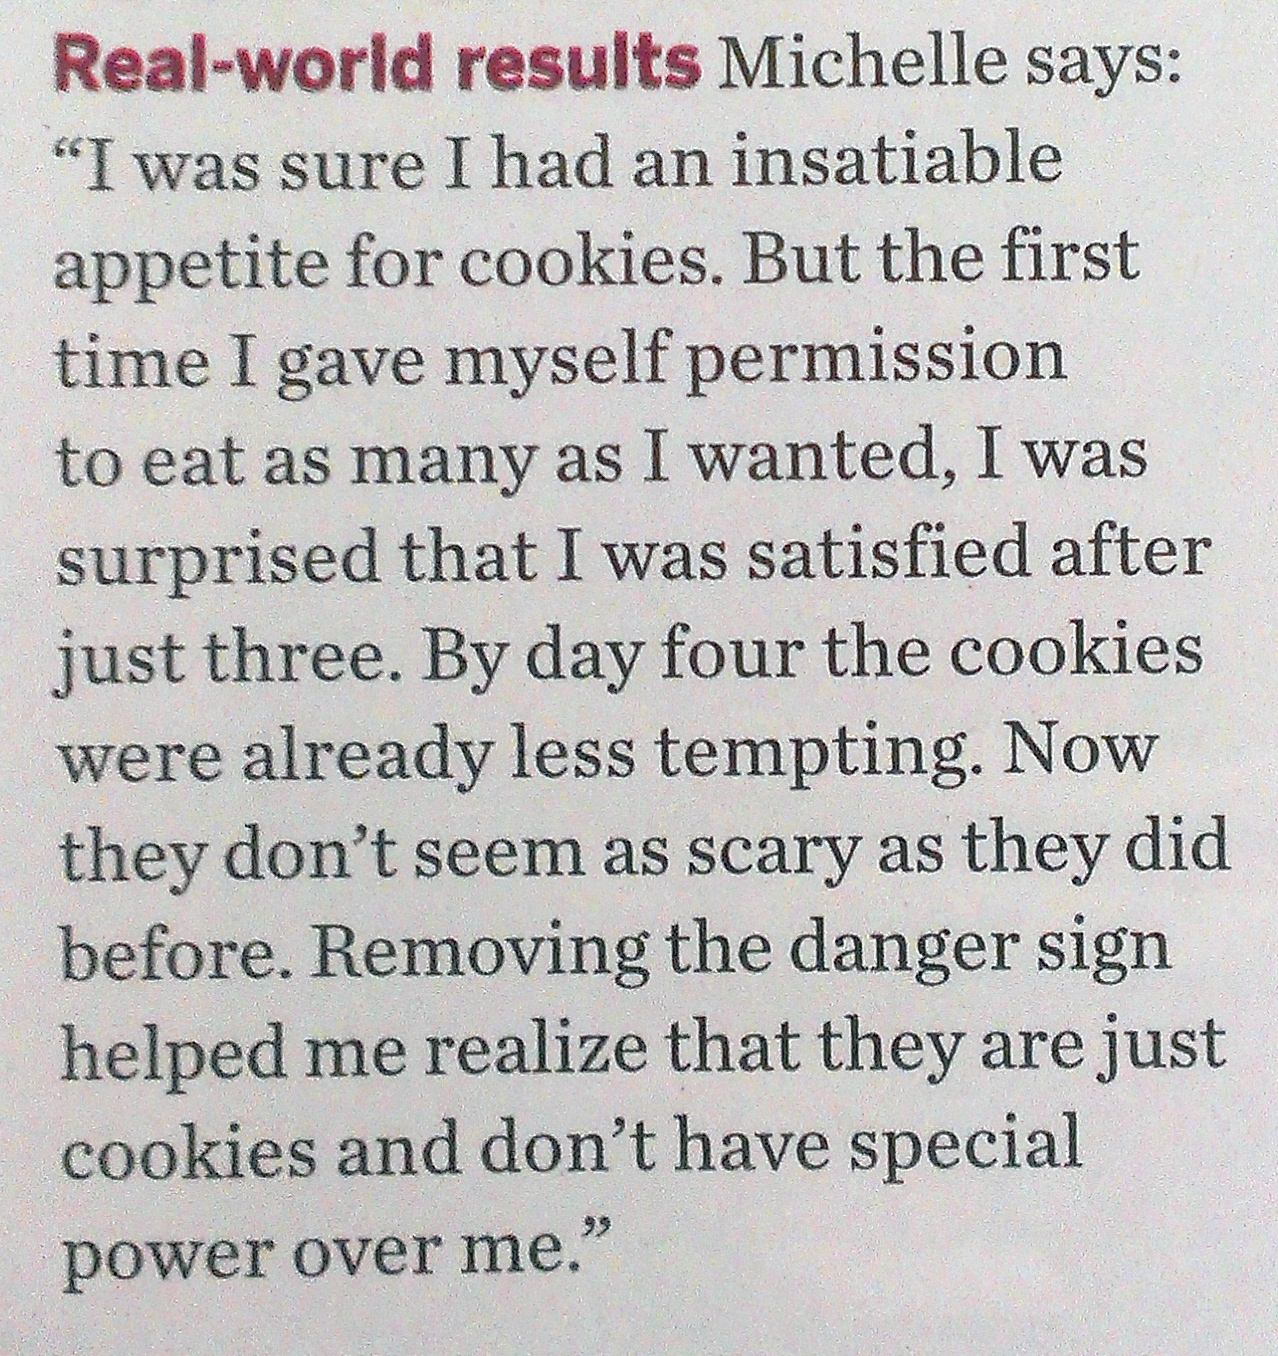 Diary of an Aspiring Loser: Intuitive Eating - in Fitness Magazine!